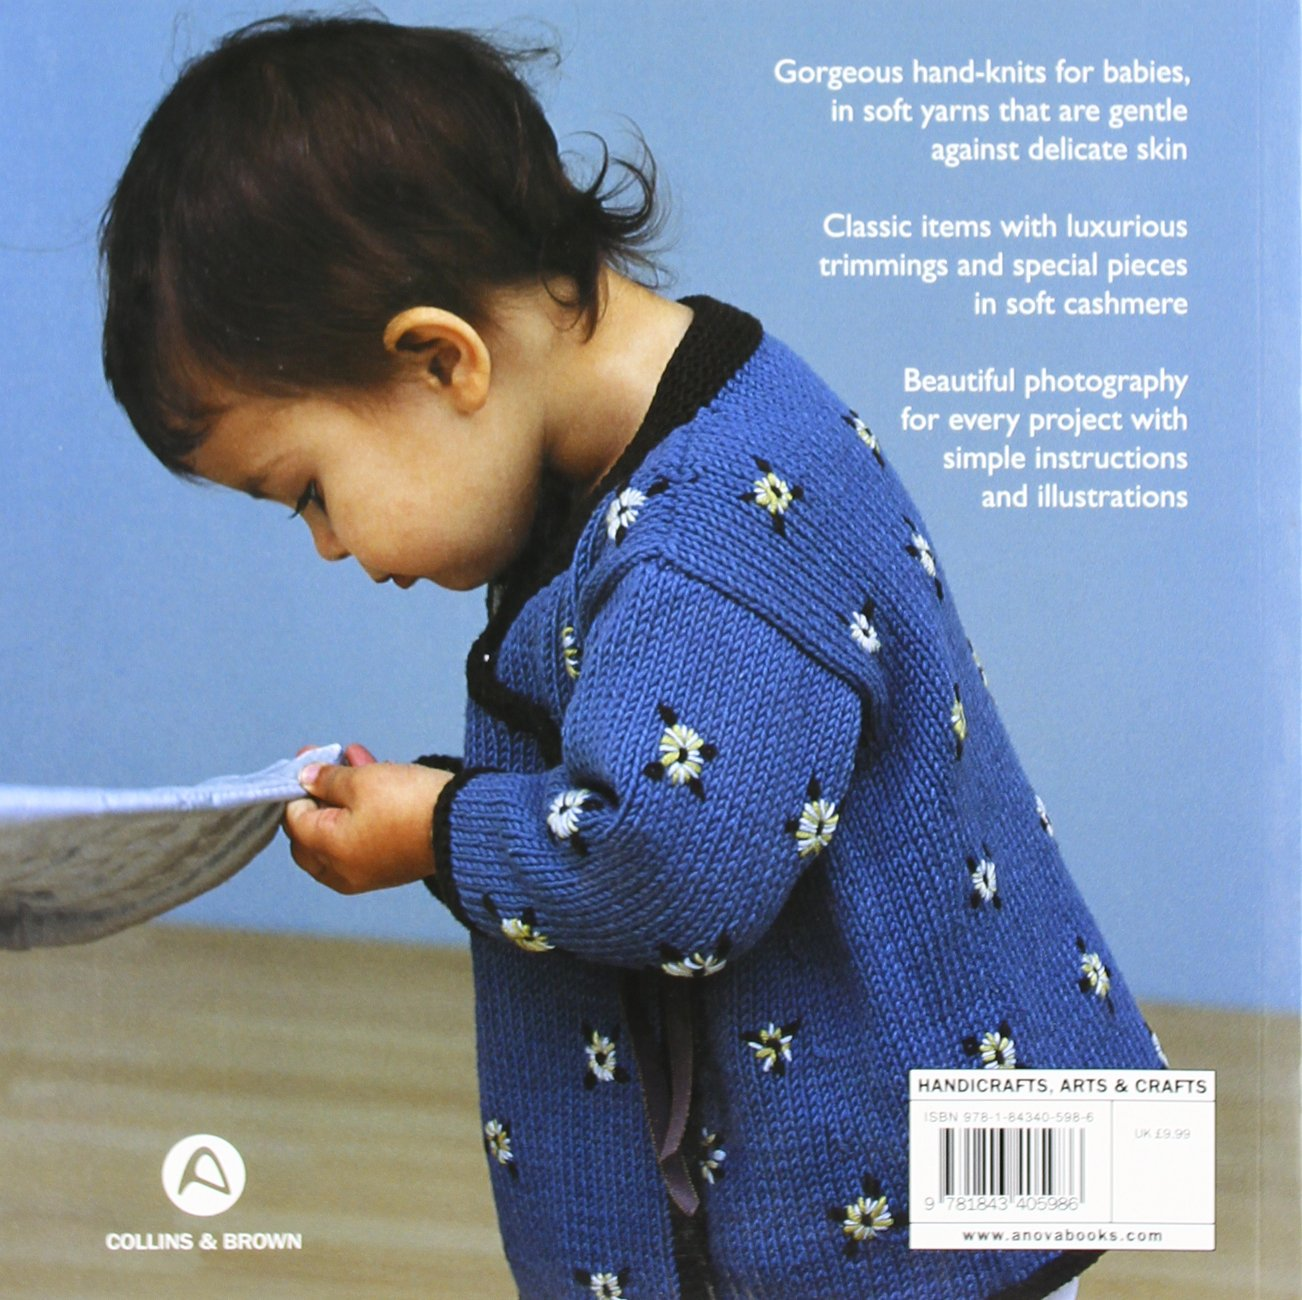 Special Knits: 22 Gorgeous Handknits for Babies and Toddlers. Debbie Bliss (C&B Crafts (Paperback))